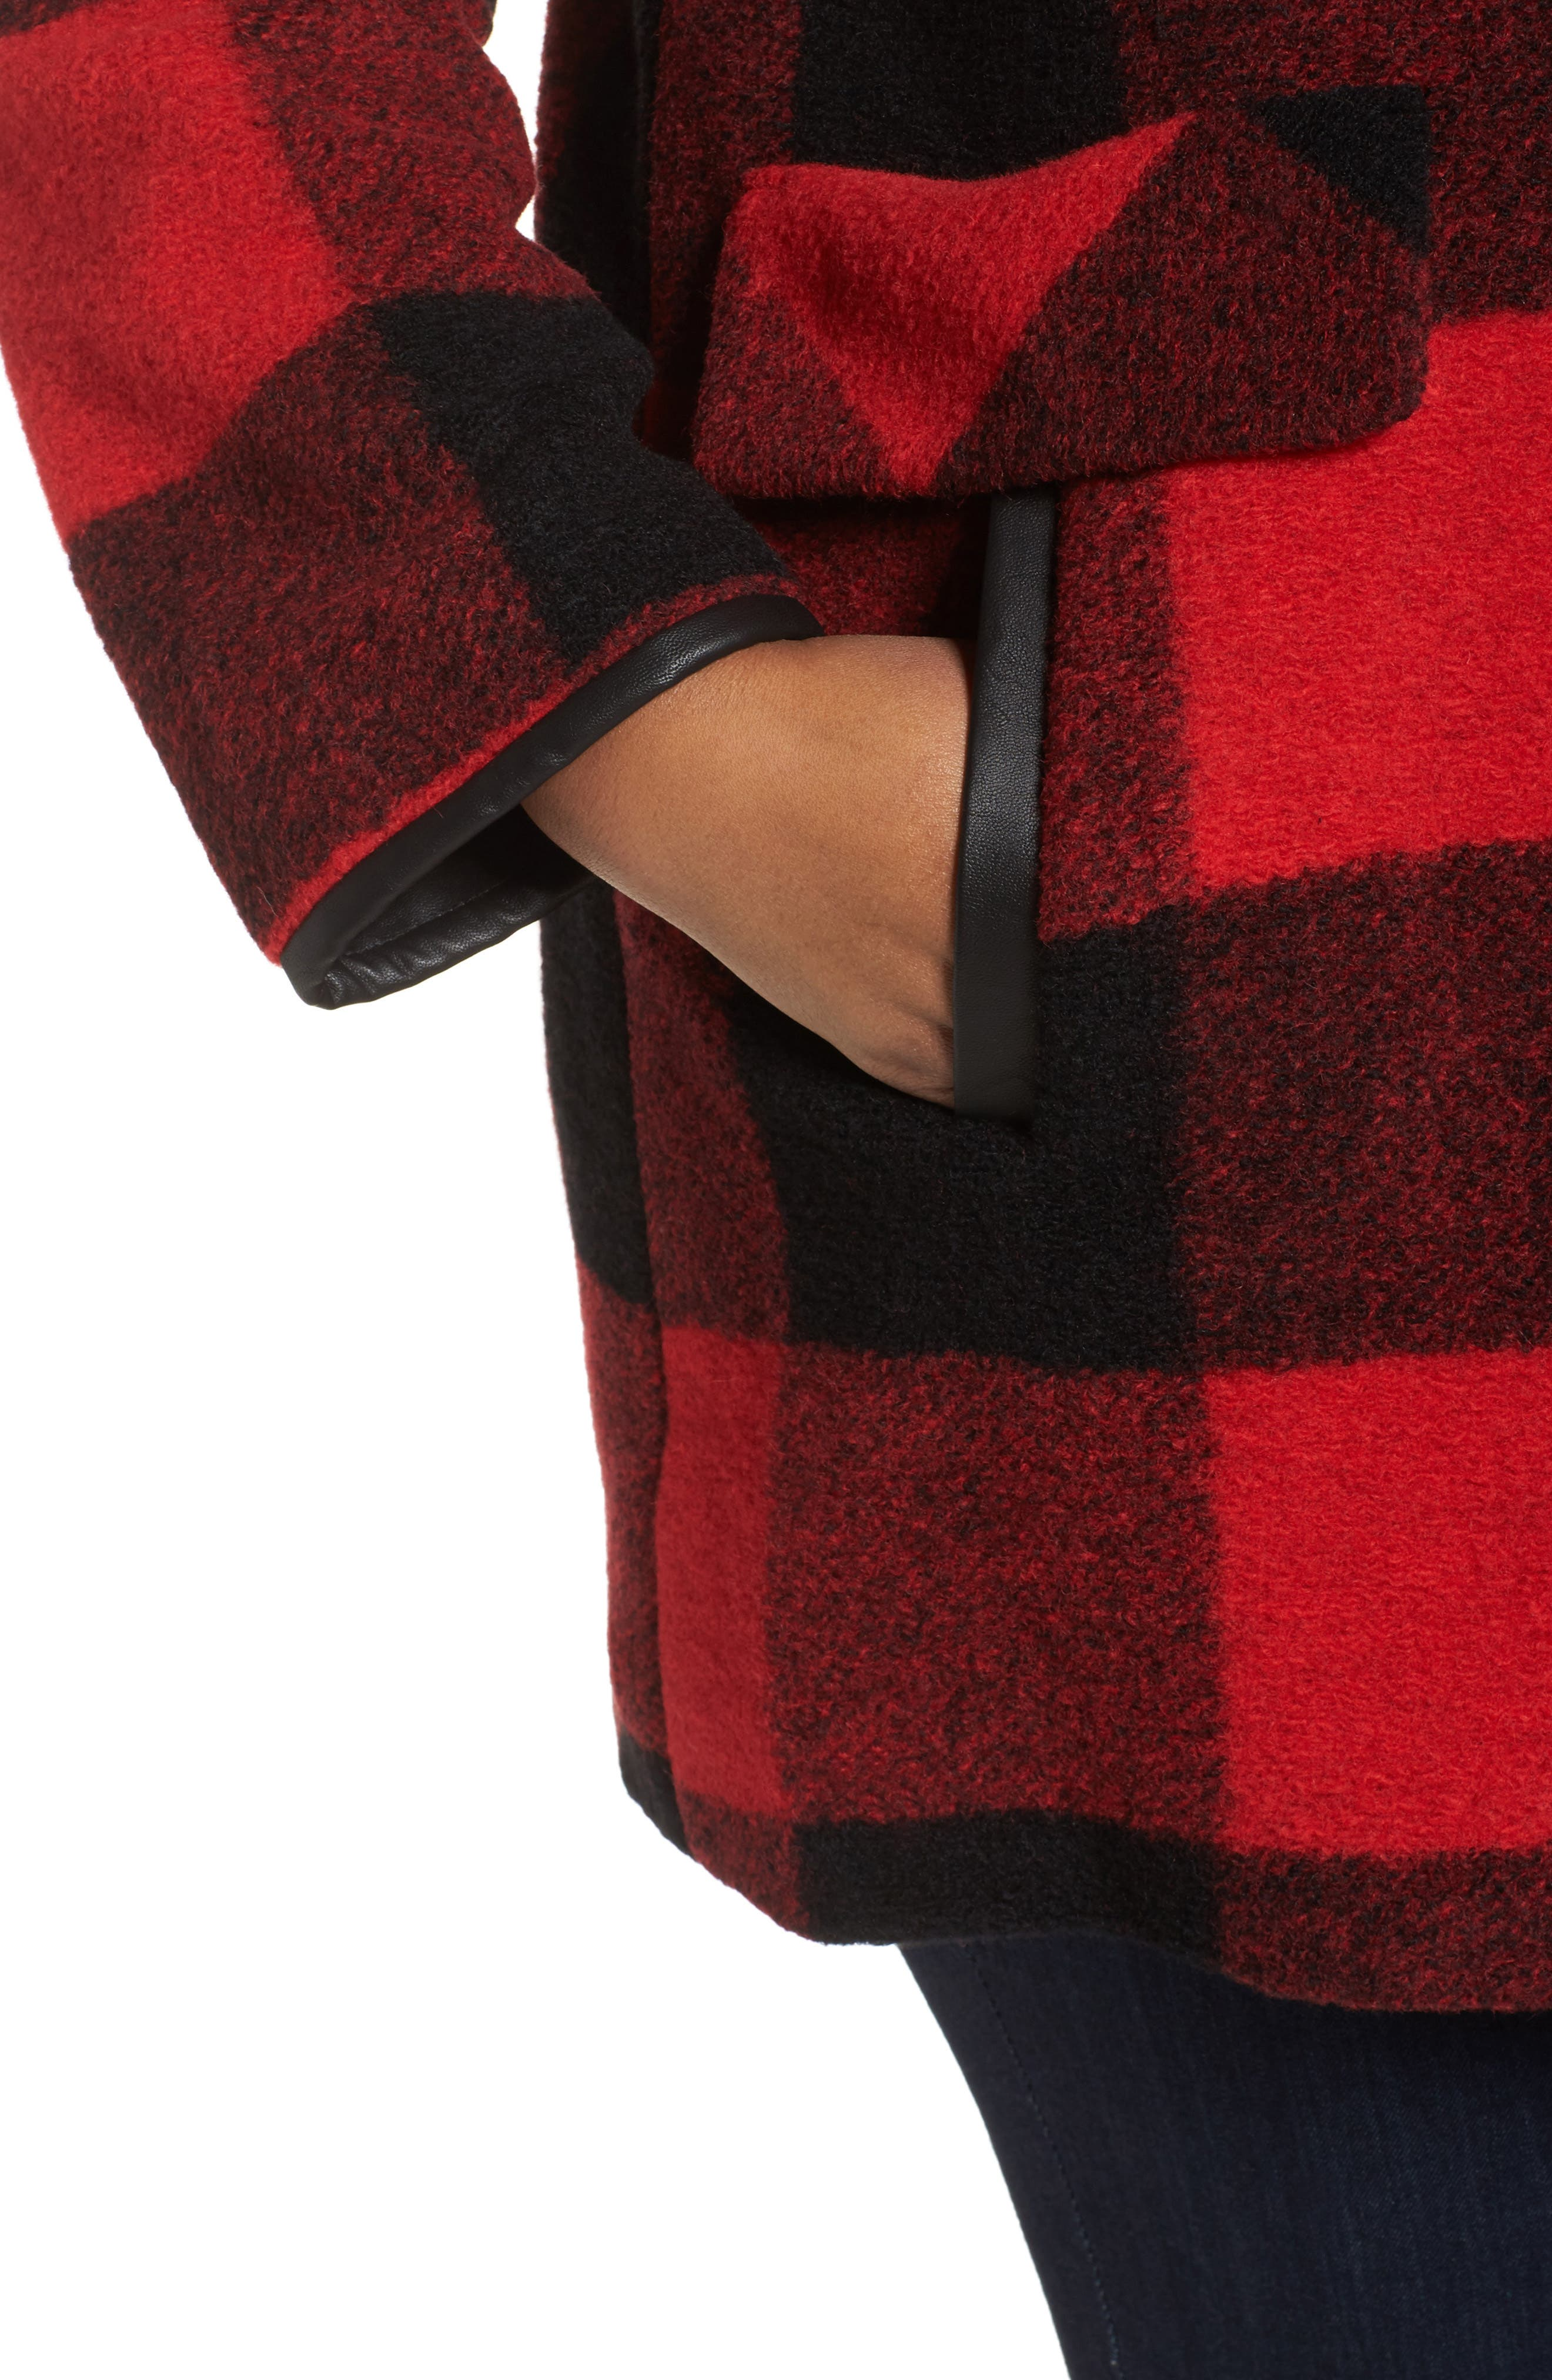 Paul Bunyan Plaid Wool Blend Barn Coat,                             Alternate thumbnail 8, color,